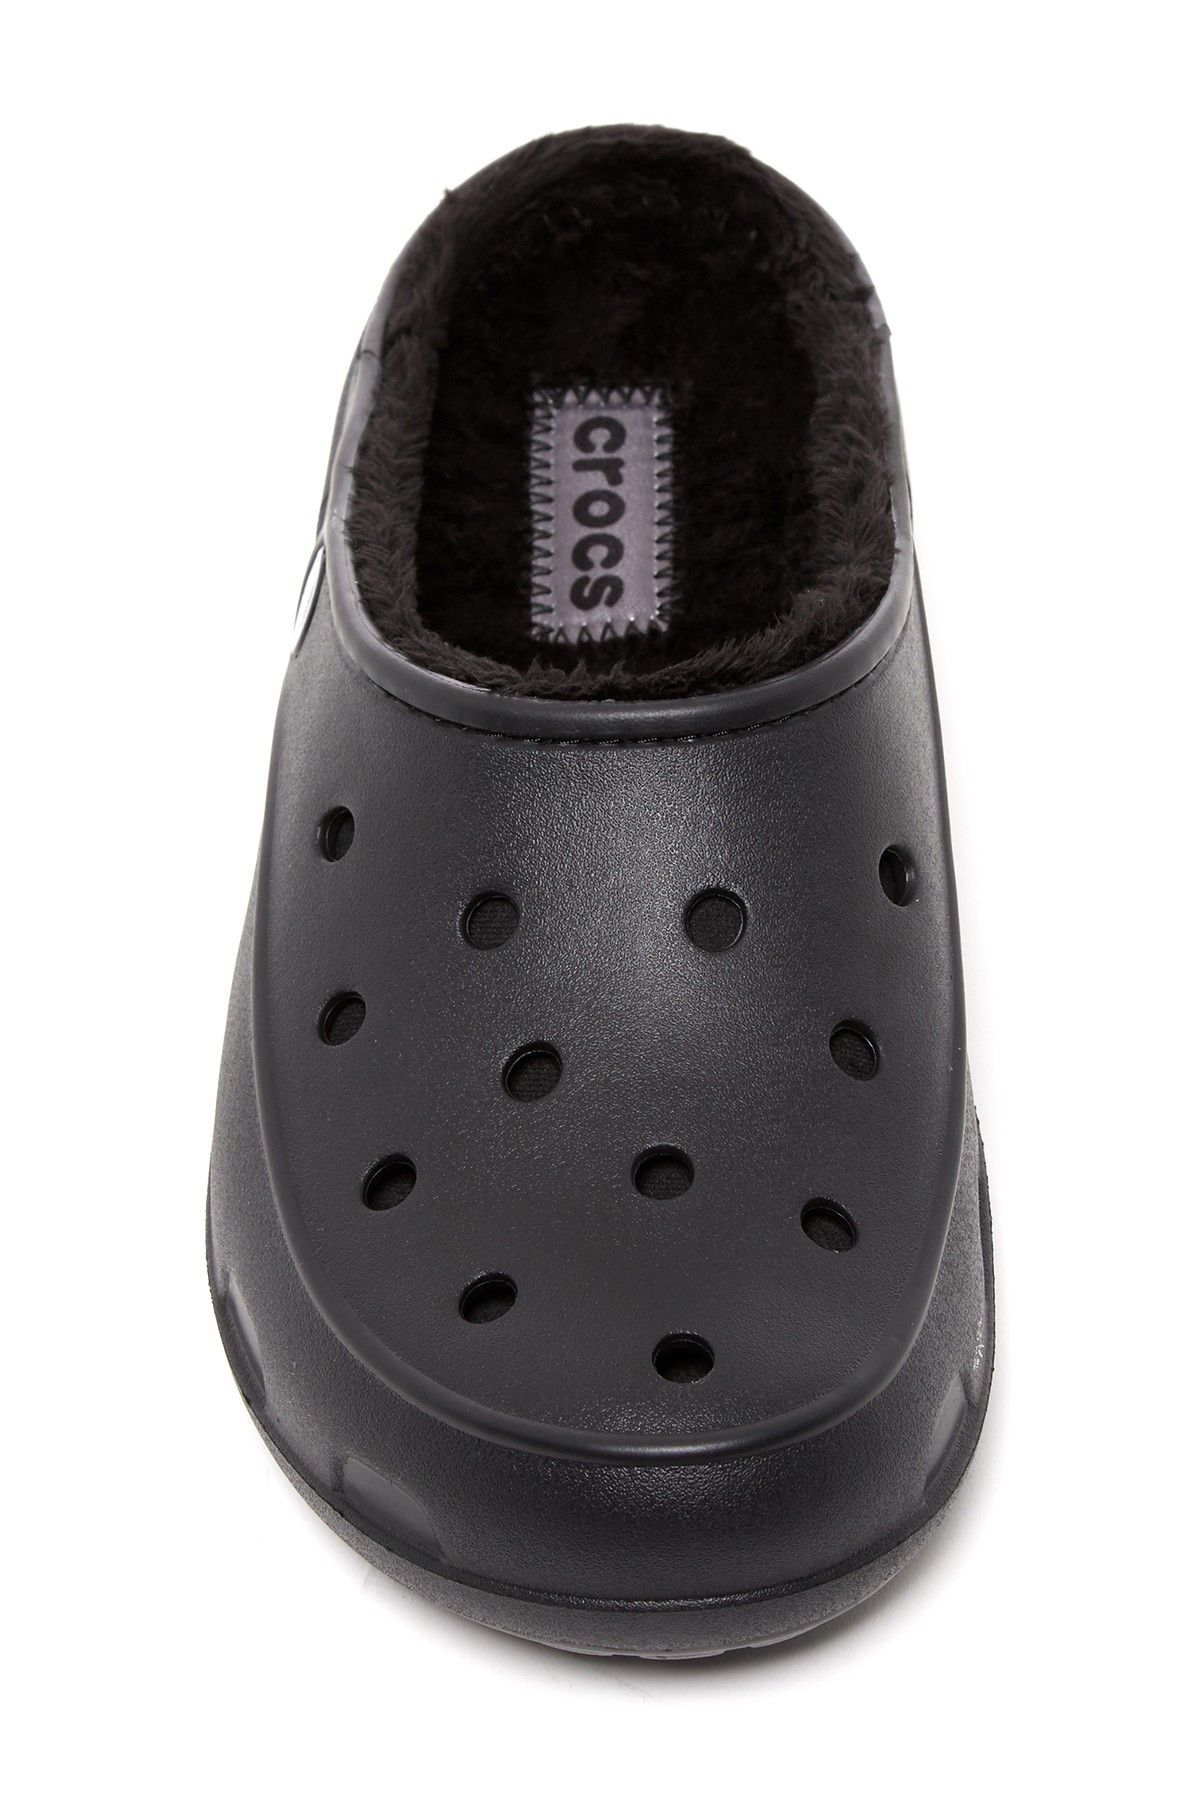 fa8a97763 Freesail Faux Fur Lined Clog by Crocs on  nordstrom rack